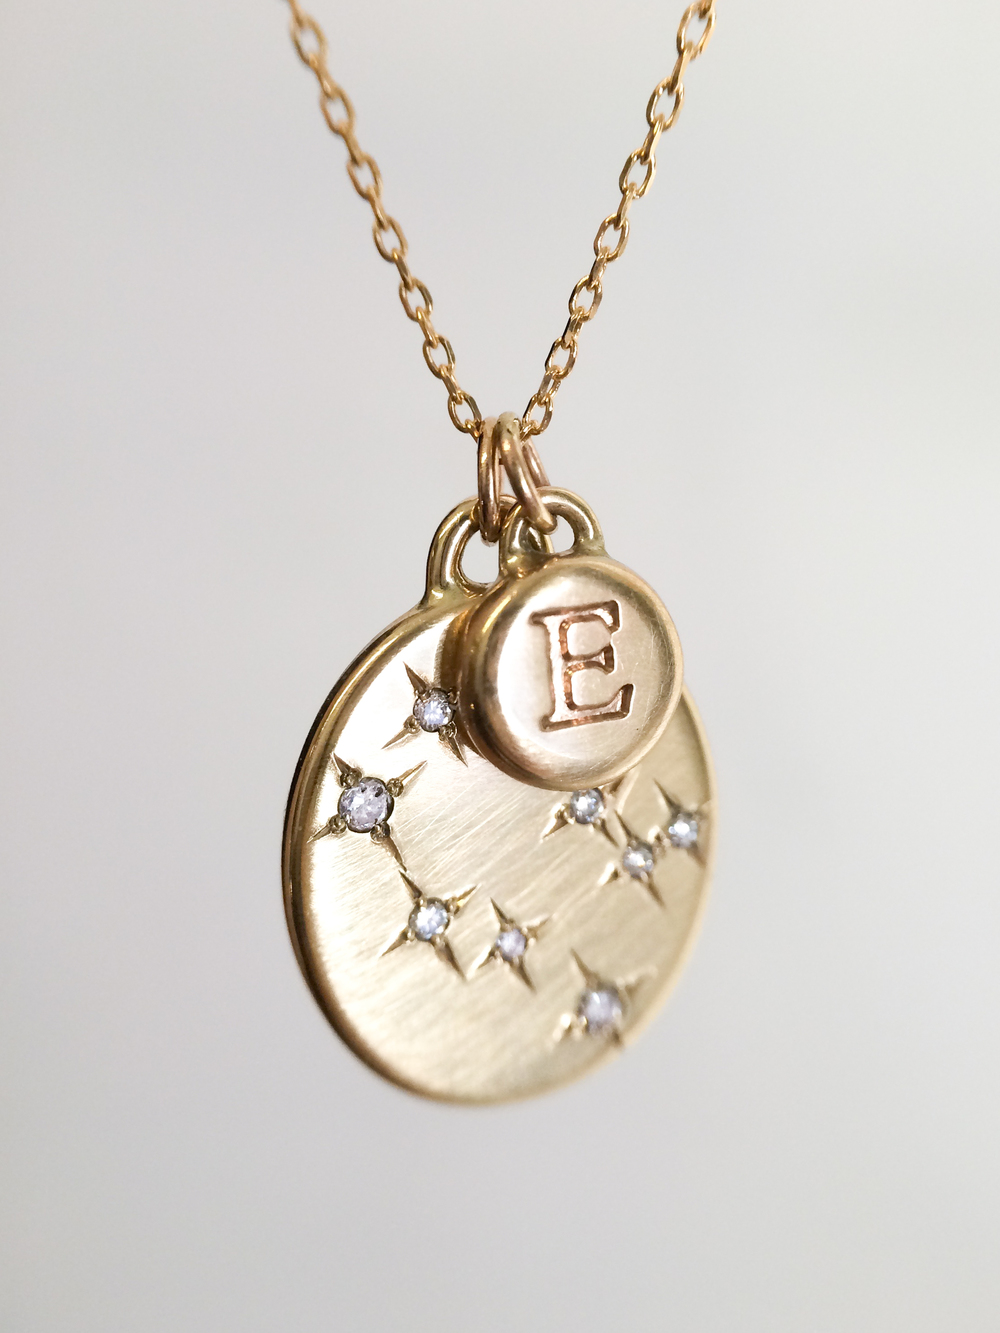 gemini e necklace.jpg